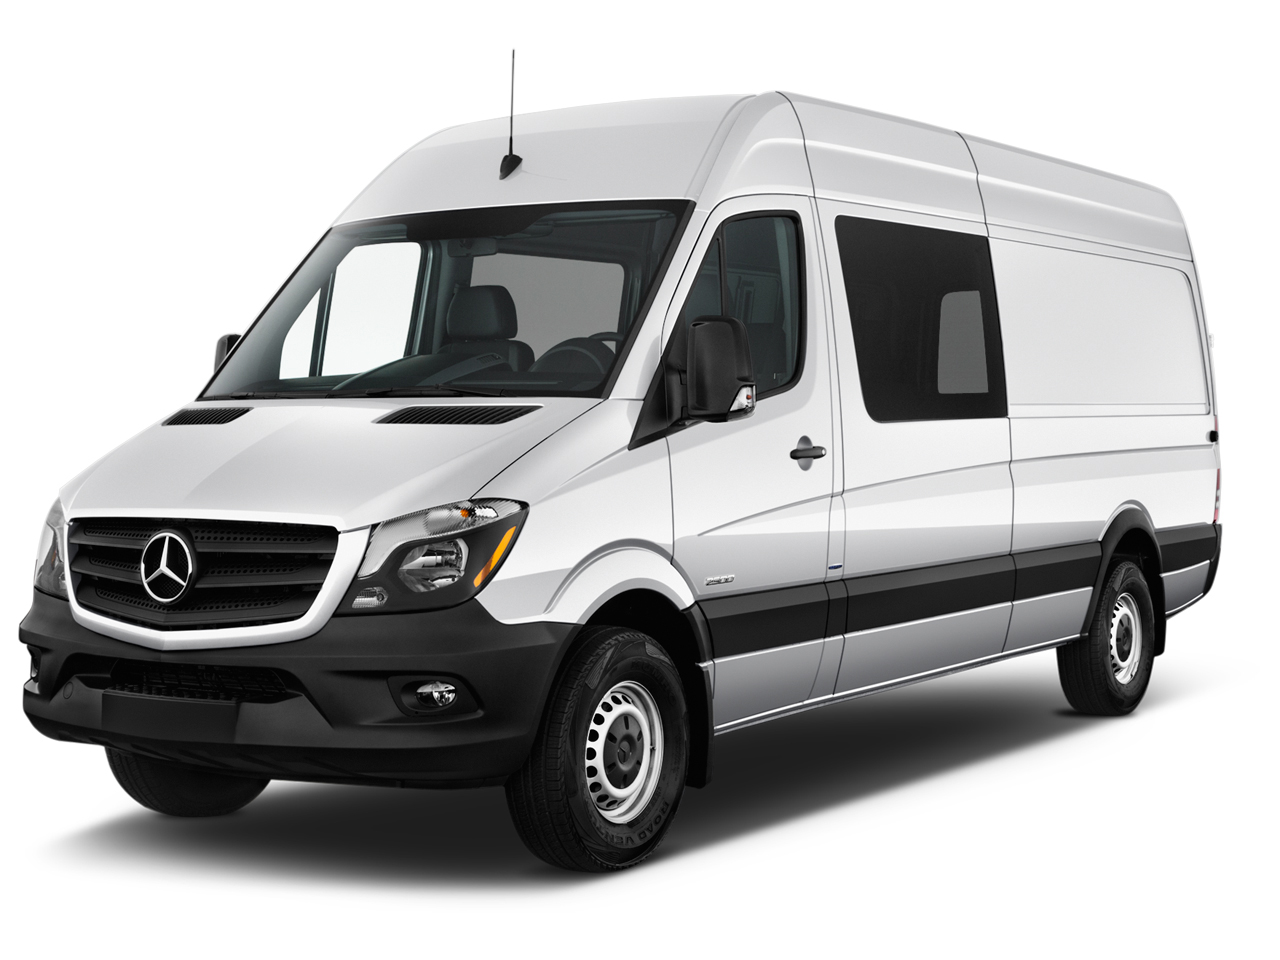 2016 mercedes benz sprinter crew vans review ratings for Mercedes benz sprinter luxury van price